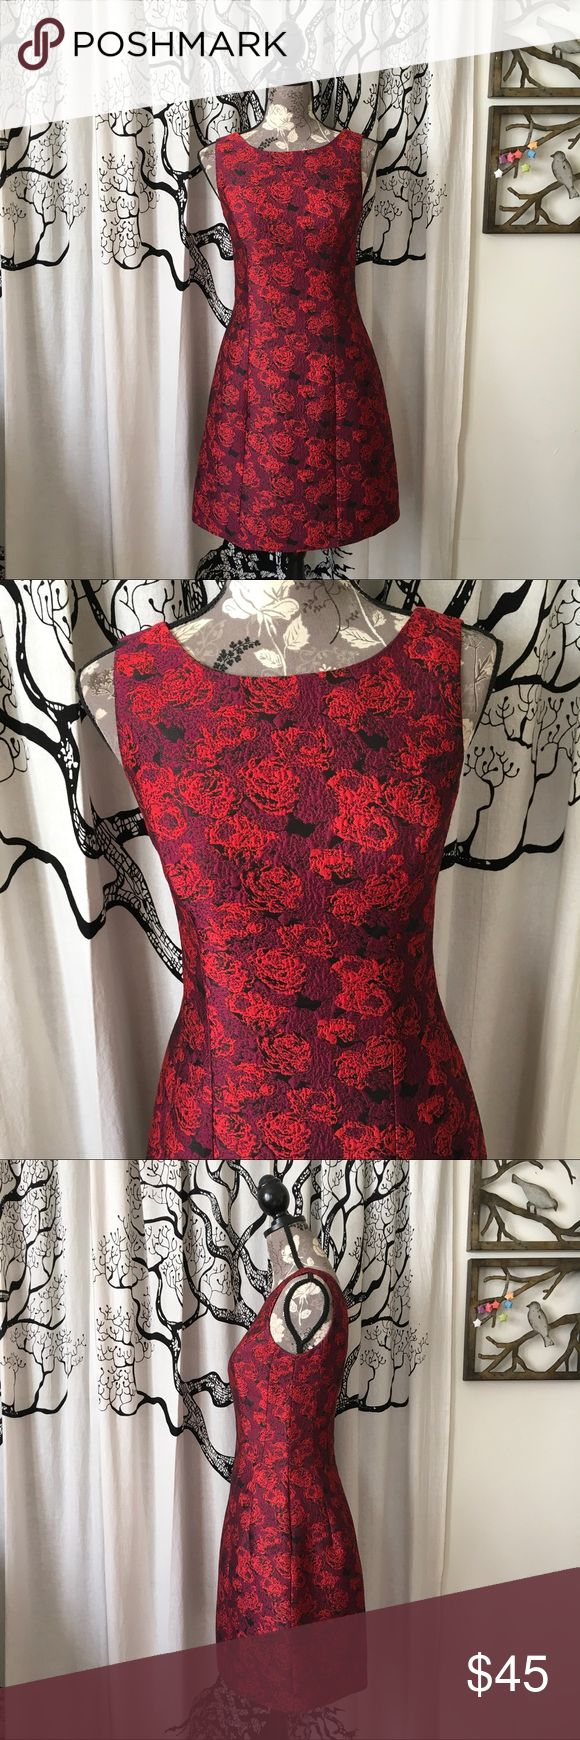 "Aidan Mattox Brocade Fit & Flare Dress w/ Pockets Absolutely stunning brocade fit and flare dress by Aidan Mattox in a gorgeous red floral. Pockets! Great structure and lines. Fully lined. Perfect, like new condition with no flaws (worn once and dry cleaned). 18.5"" B, 14"" W, 34"" L. This is a stunner of a dress, and the photos don't do it justice! Aidan Mattox Dresses Mini"